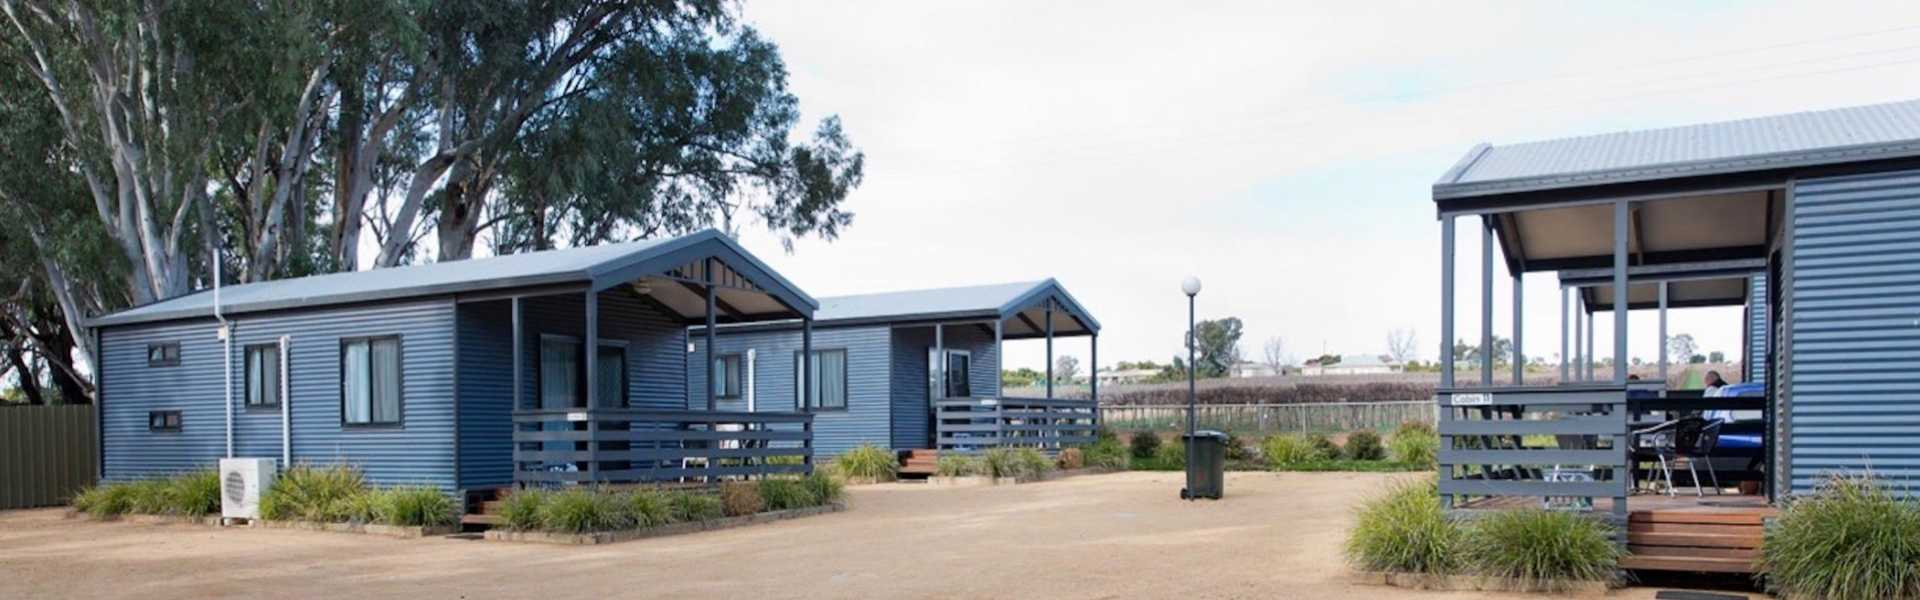 Kui Parks, Kingston on Murray Caravan Park, Cabins